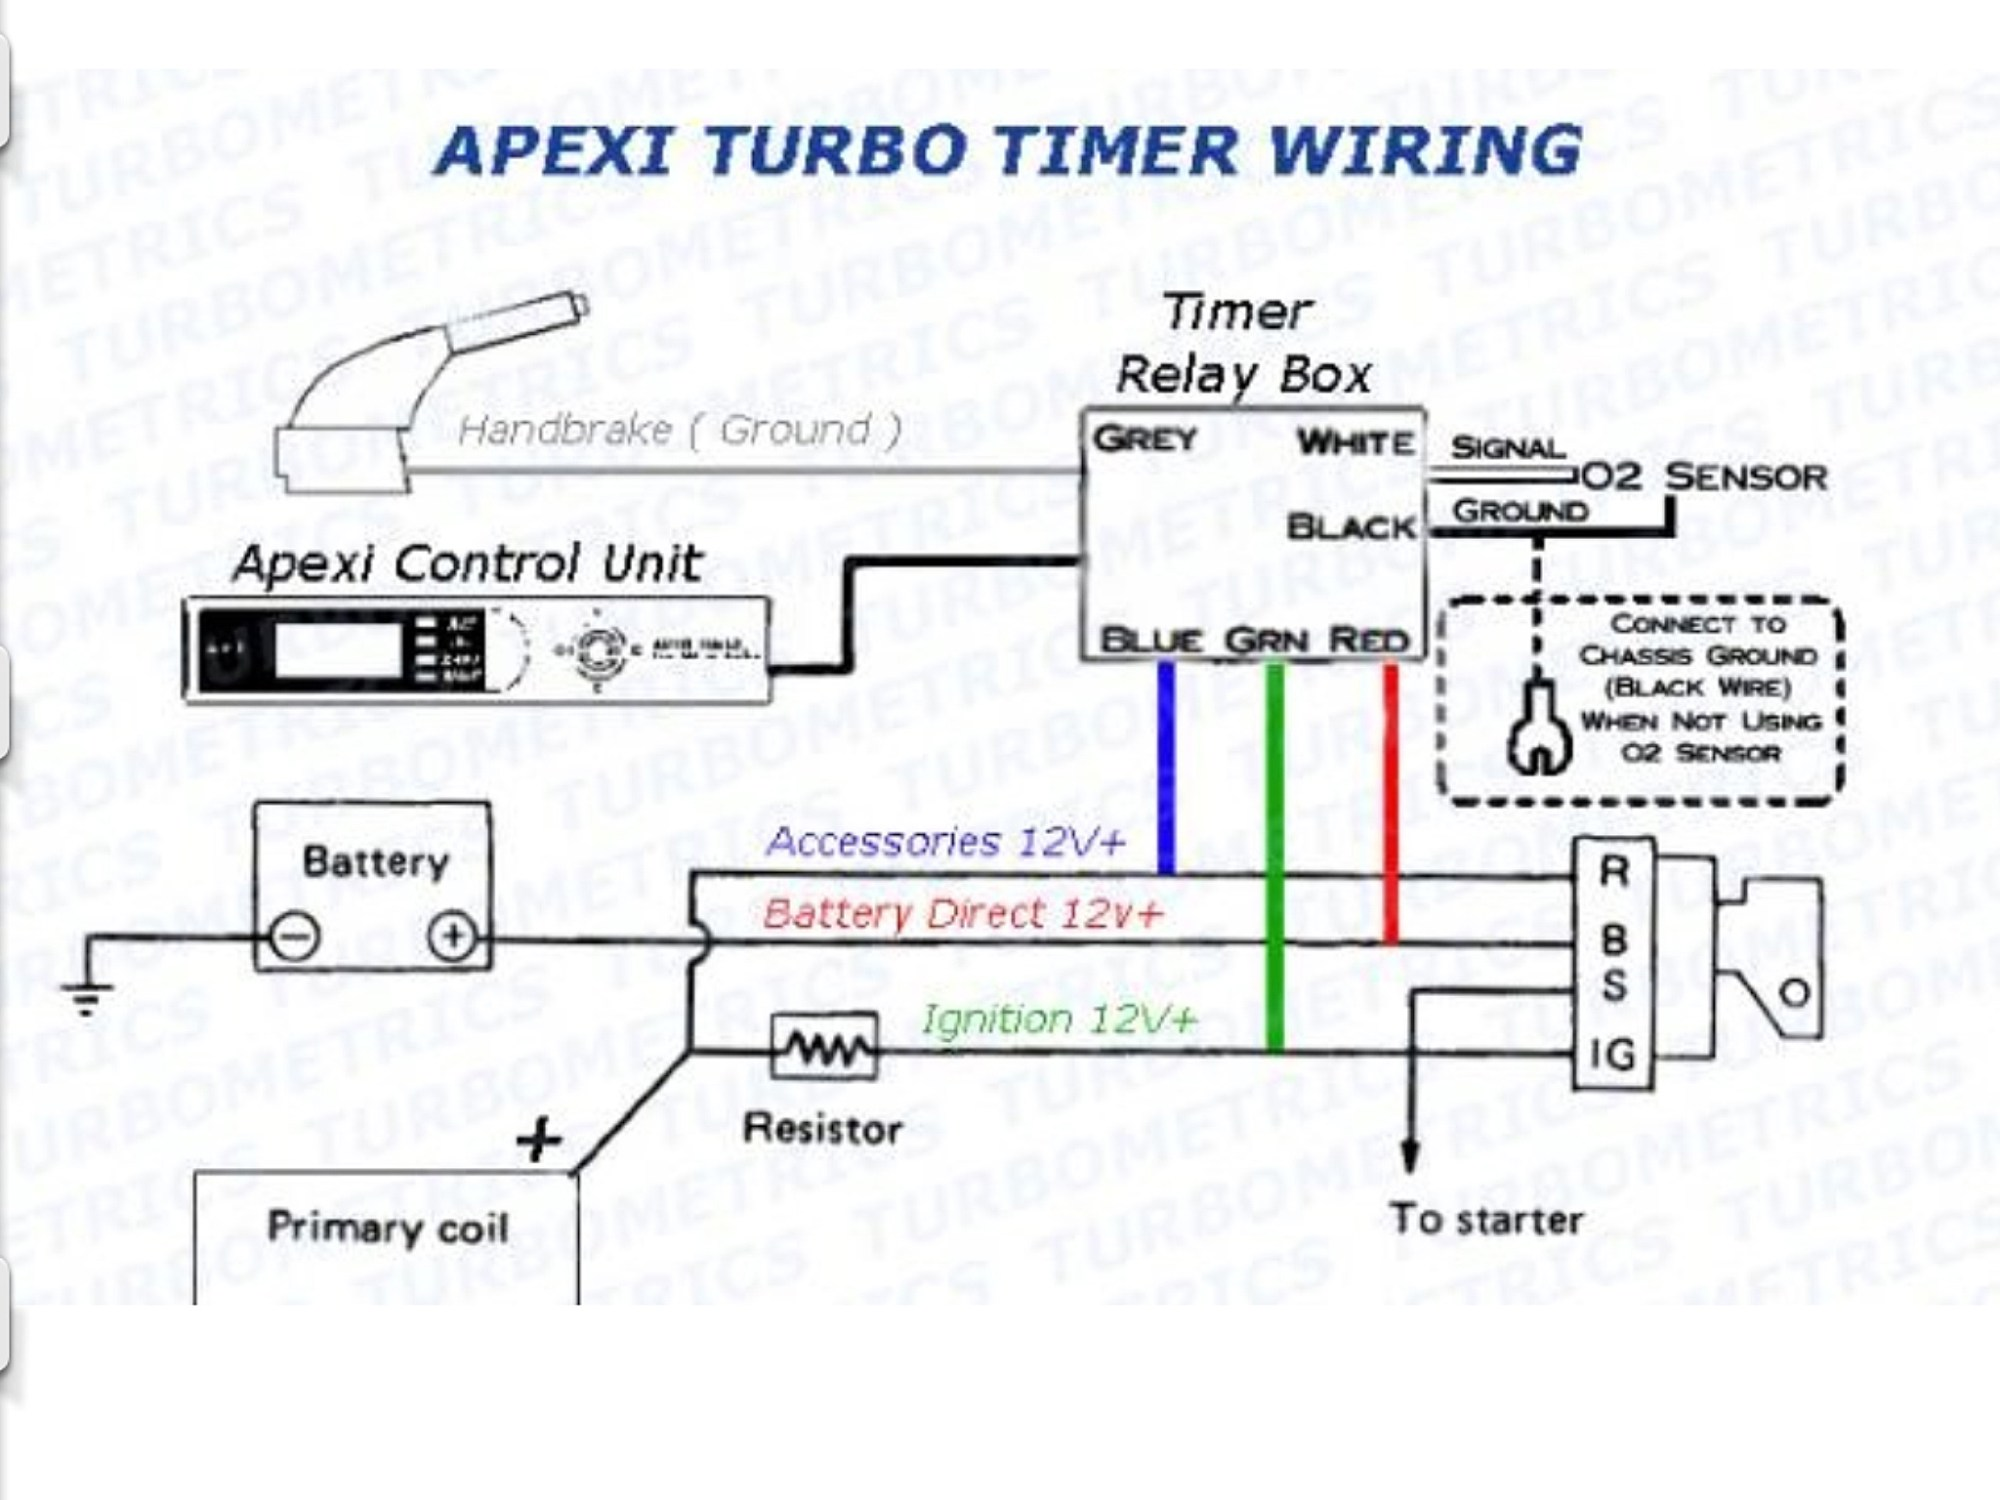 hight resolution of 2 0t gti turbo timer wiring diagram wiring diagram show